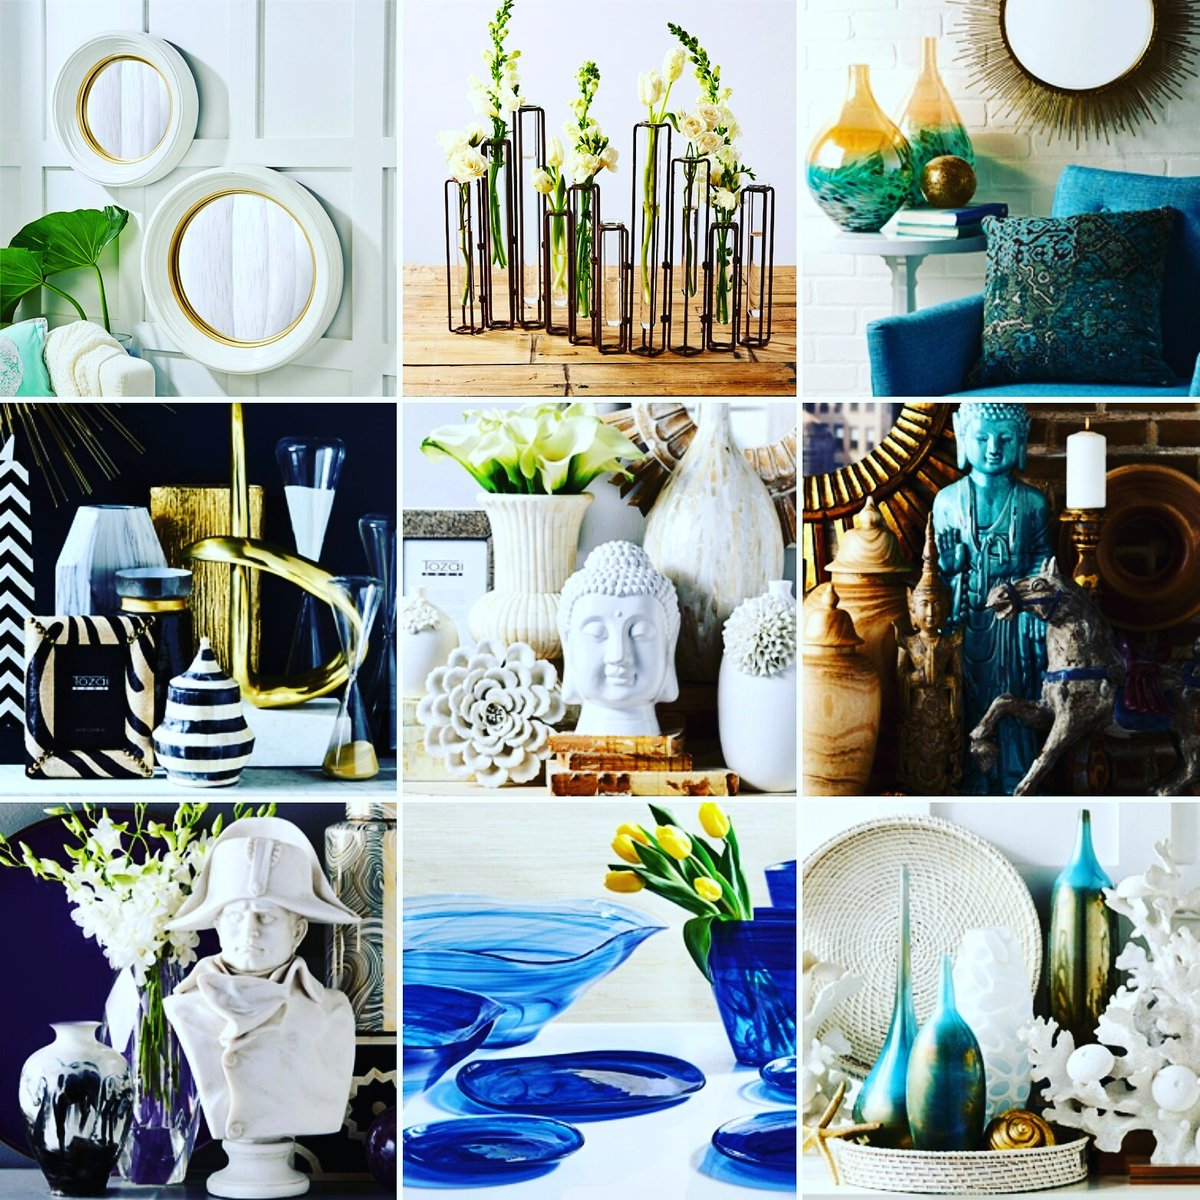 Furnished by farrah on twitter accessorize any space in your home we have just the look for you contact us now furnishedbyfarrah furnishedbf accents